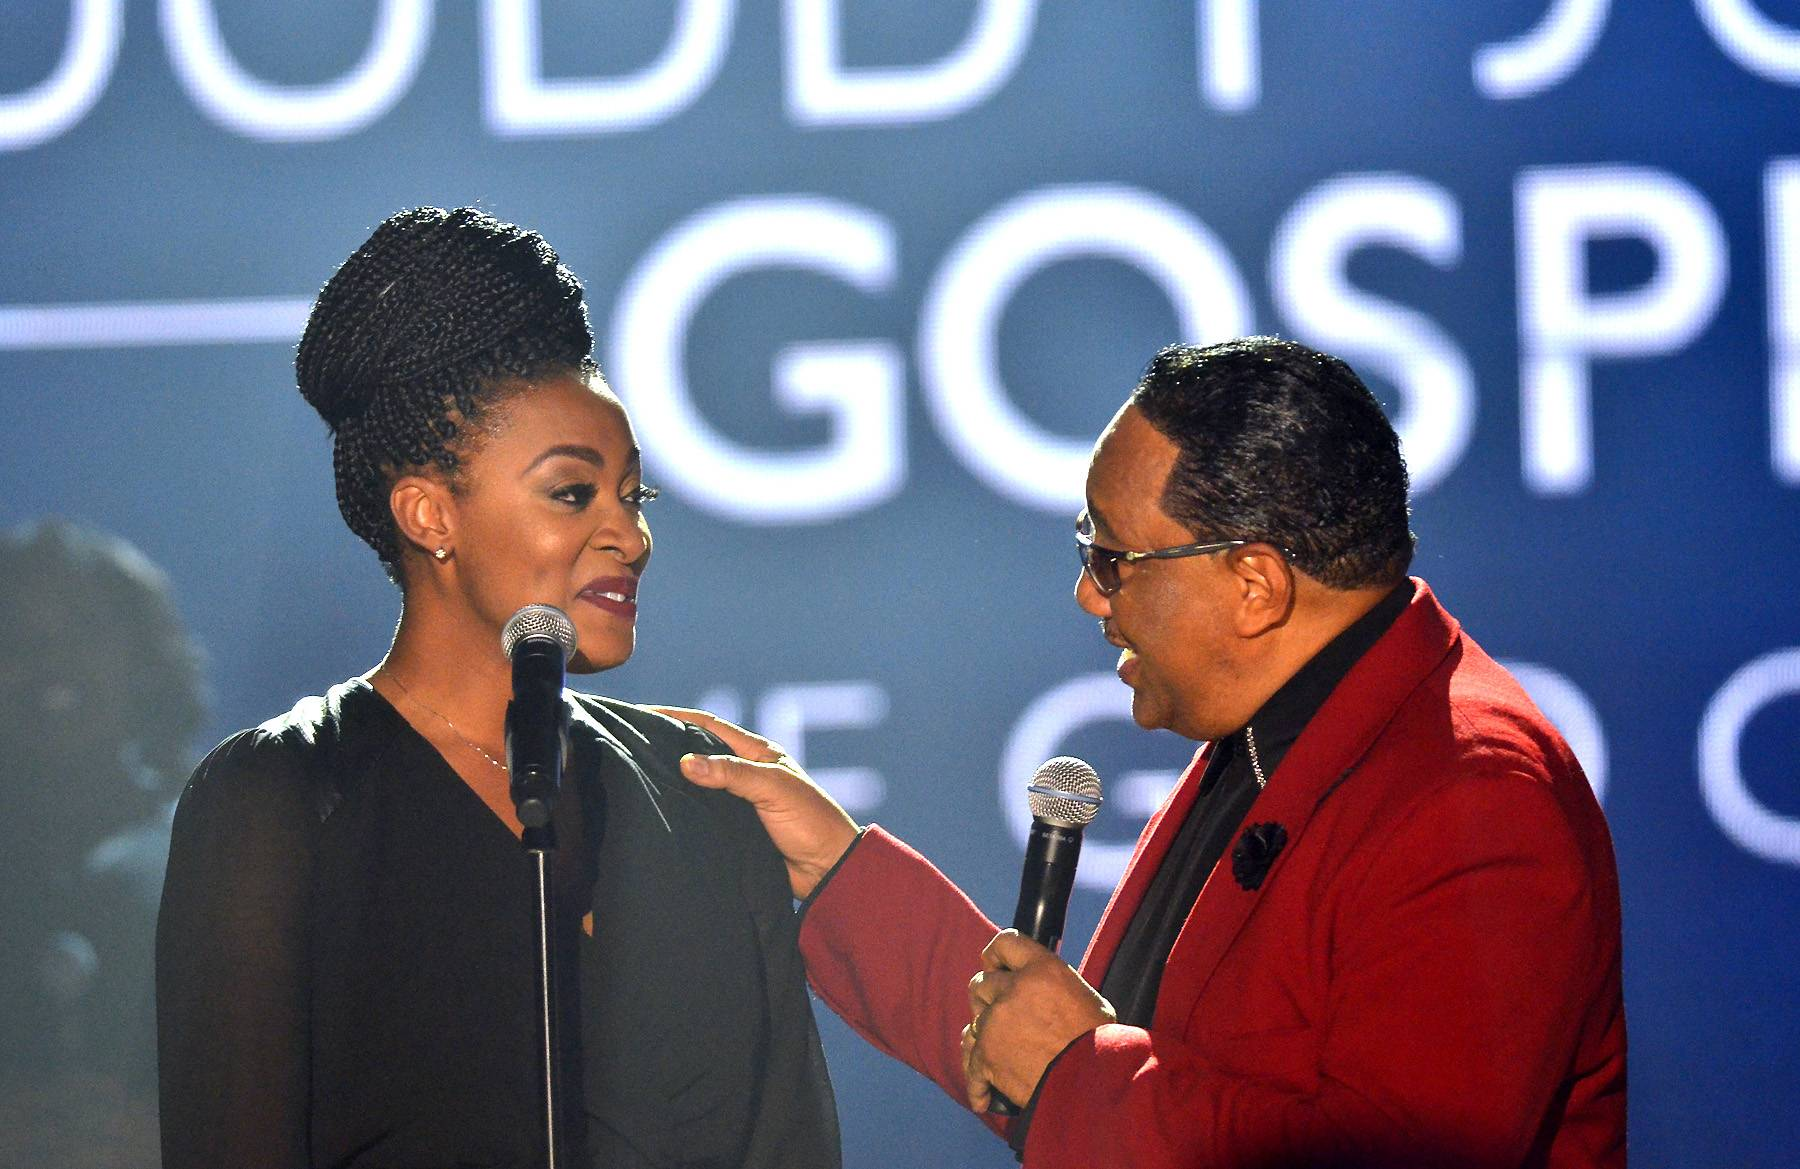 Jessica Reedy and Dr. Bobby Jones - Bobby Jones speaks with Jessica Reedy,runner up of Sunday Best Season 2. Reedy is due to release her sophomore CD very soon! She participated in the taping of BET's Bobby Jones Gospel at BET Studios on August 1, 2014, in Washington, D.C.(Photo: Kris Connor/Getty Images for BET Networks)